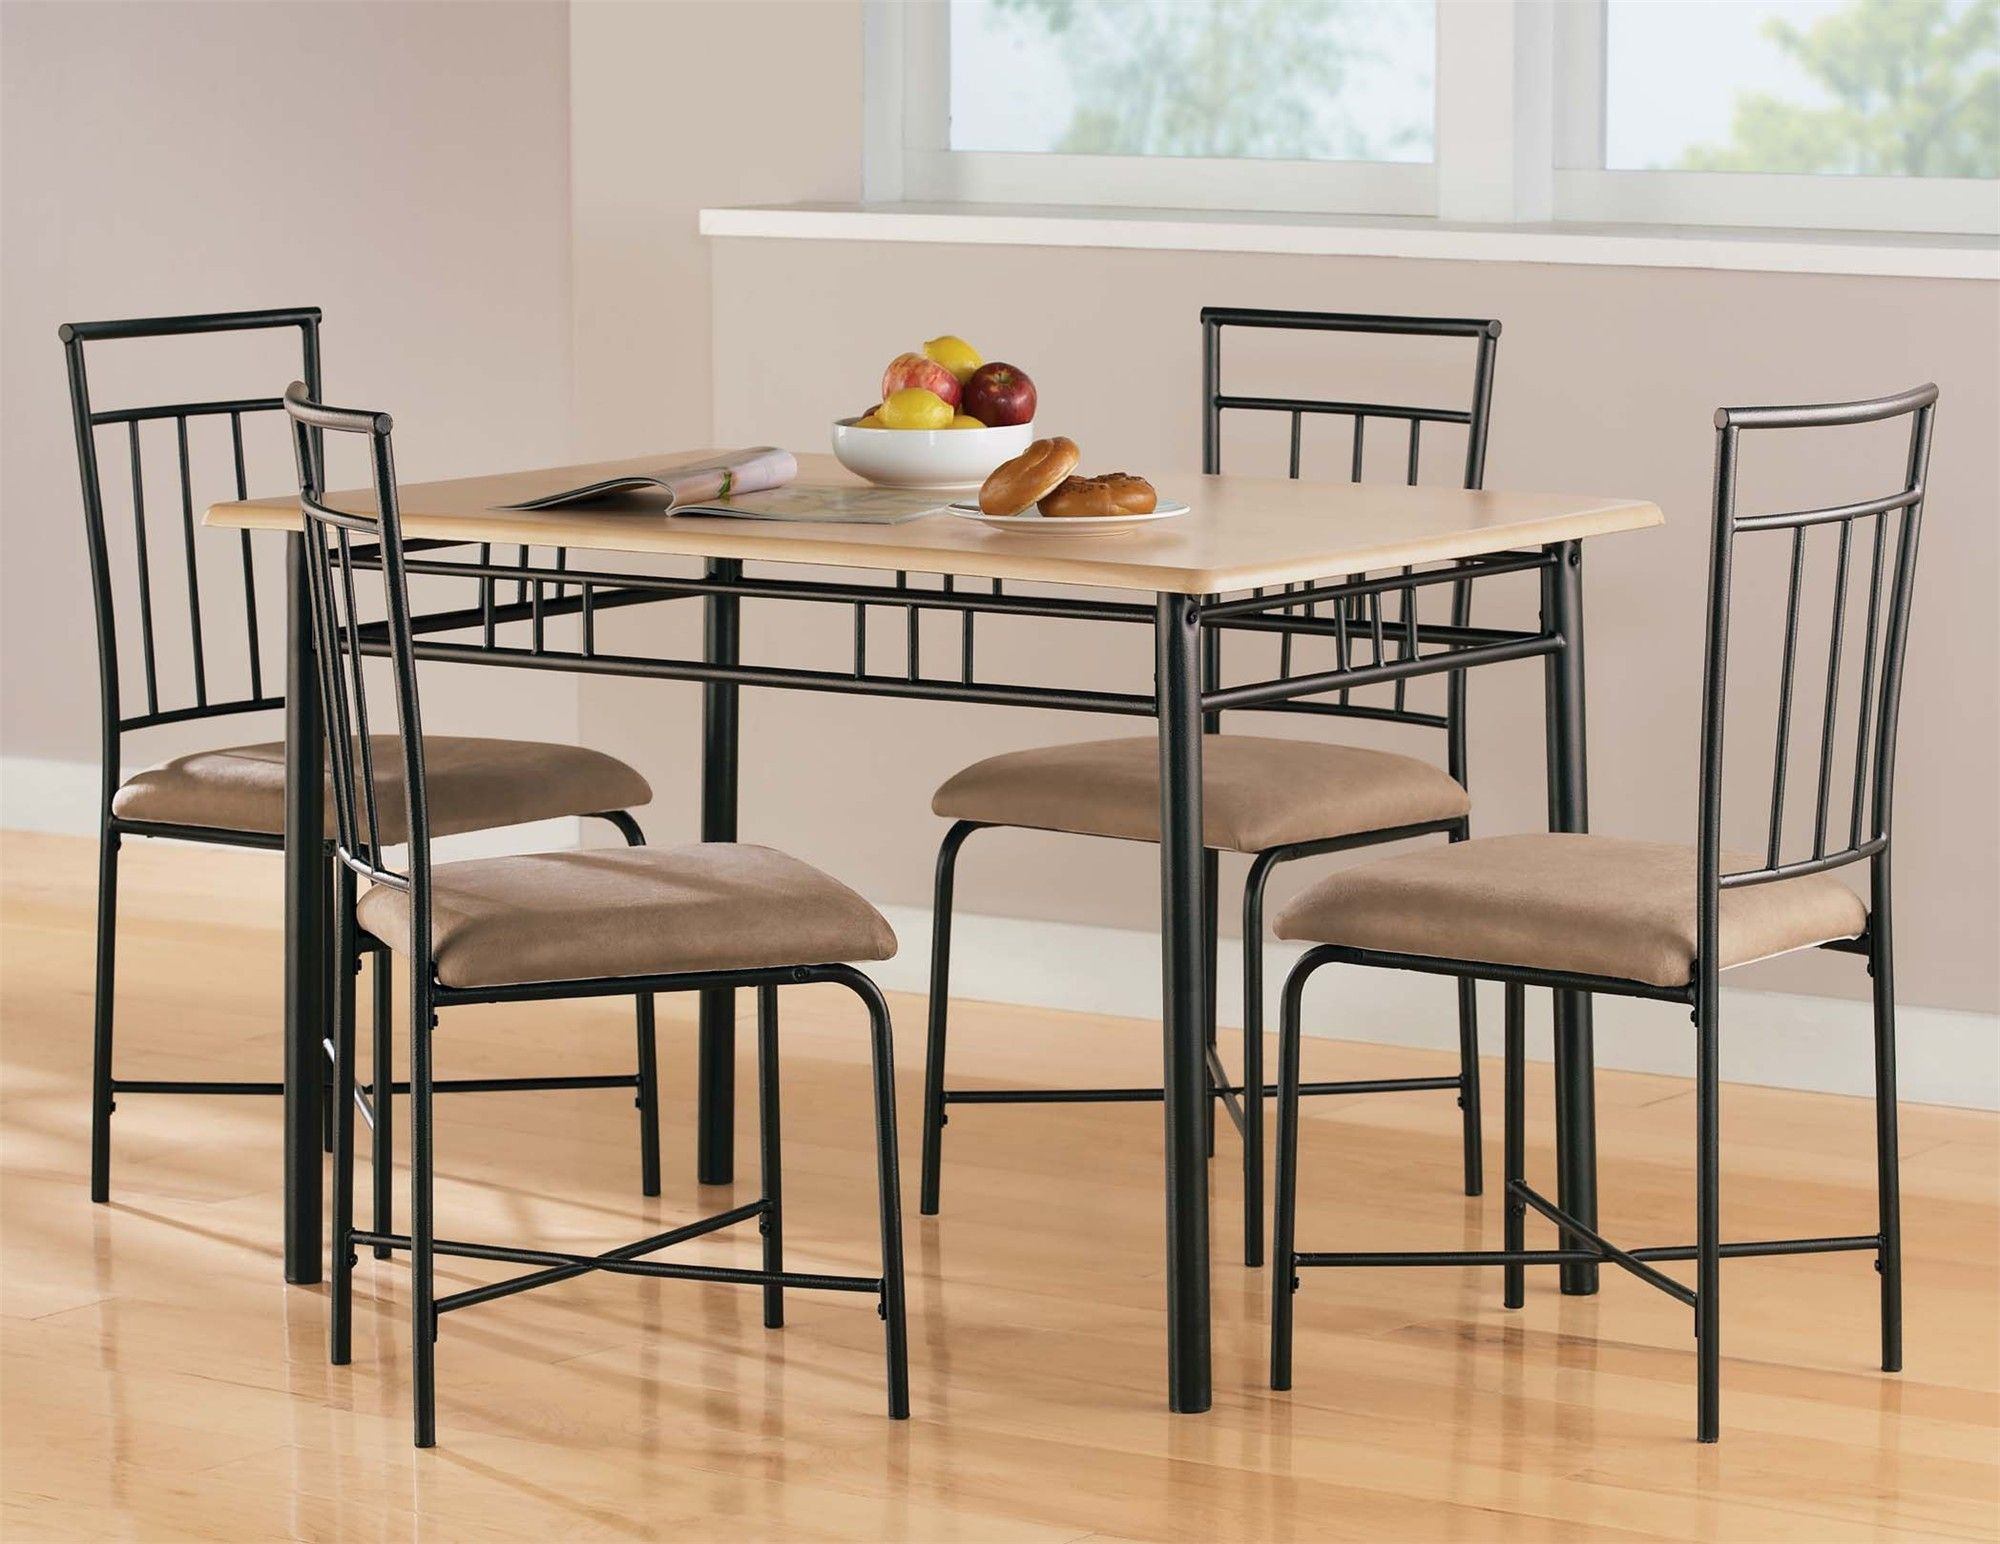 Dining room unique dining room furniture sets with black steel dining table 4 chairs above laminate